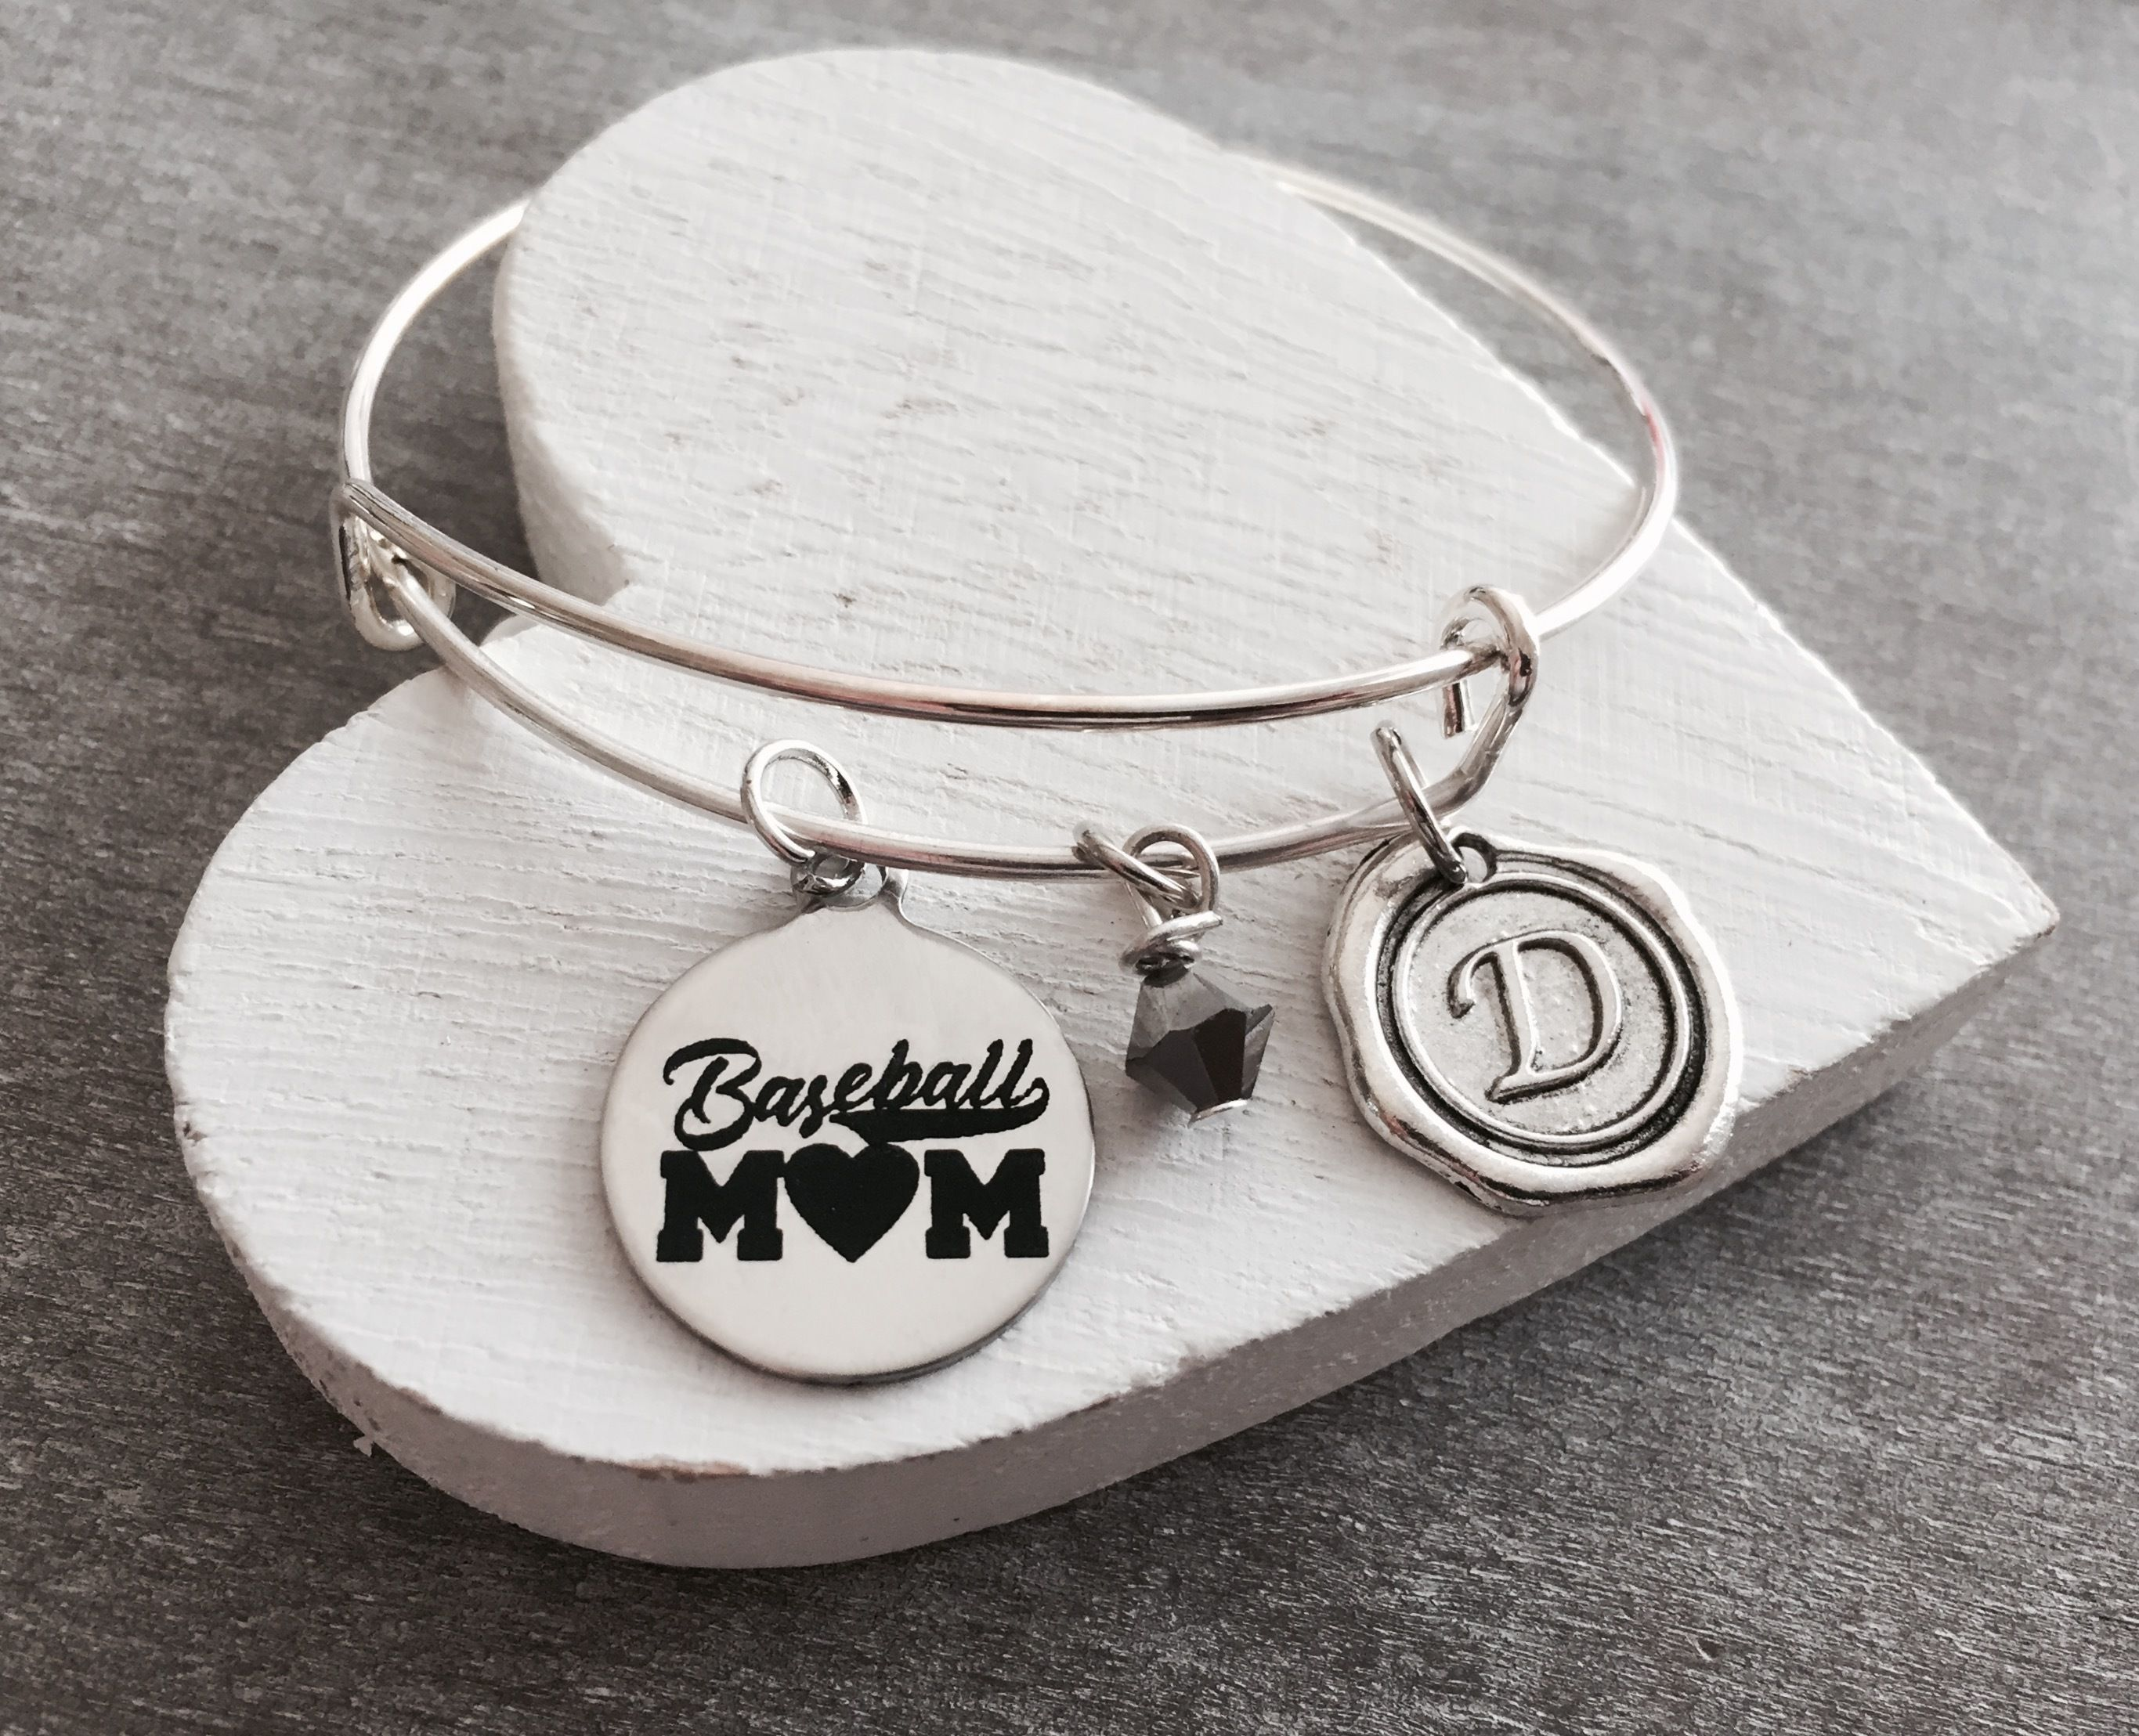 Baseball Mom Gifts For Silver Bracelet Charm Jewelry Keepsake Sports League